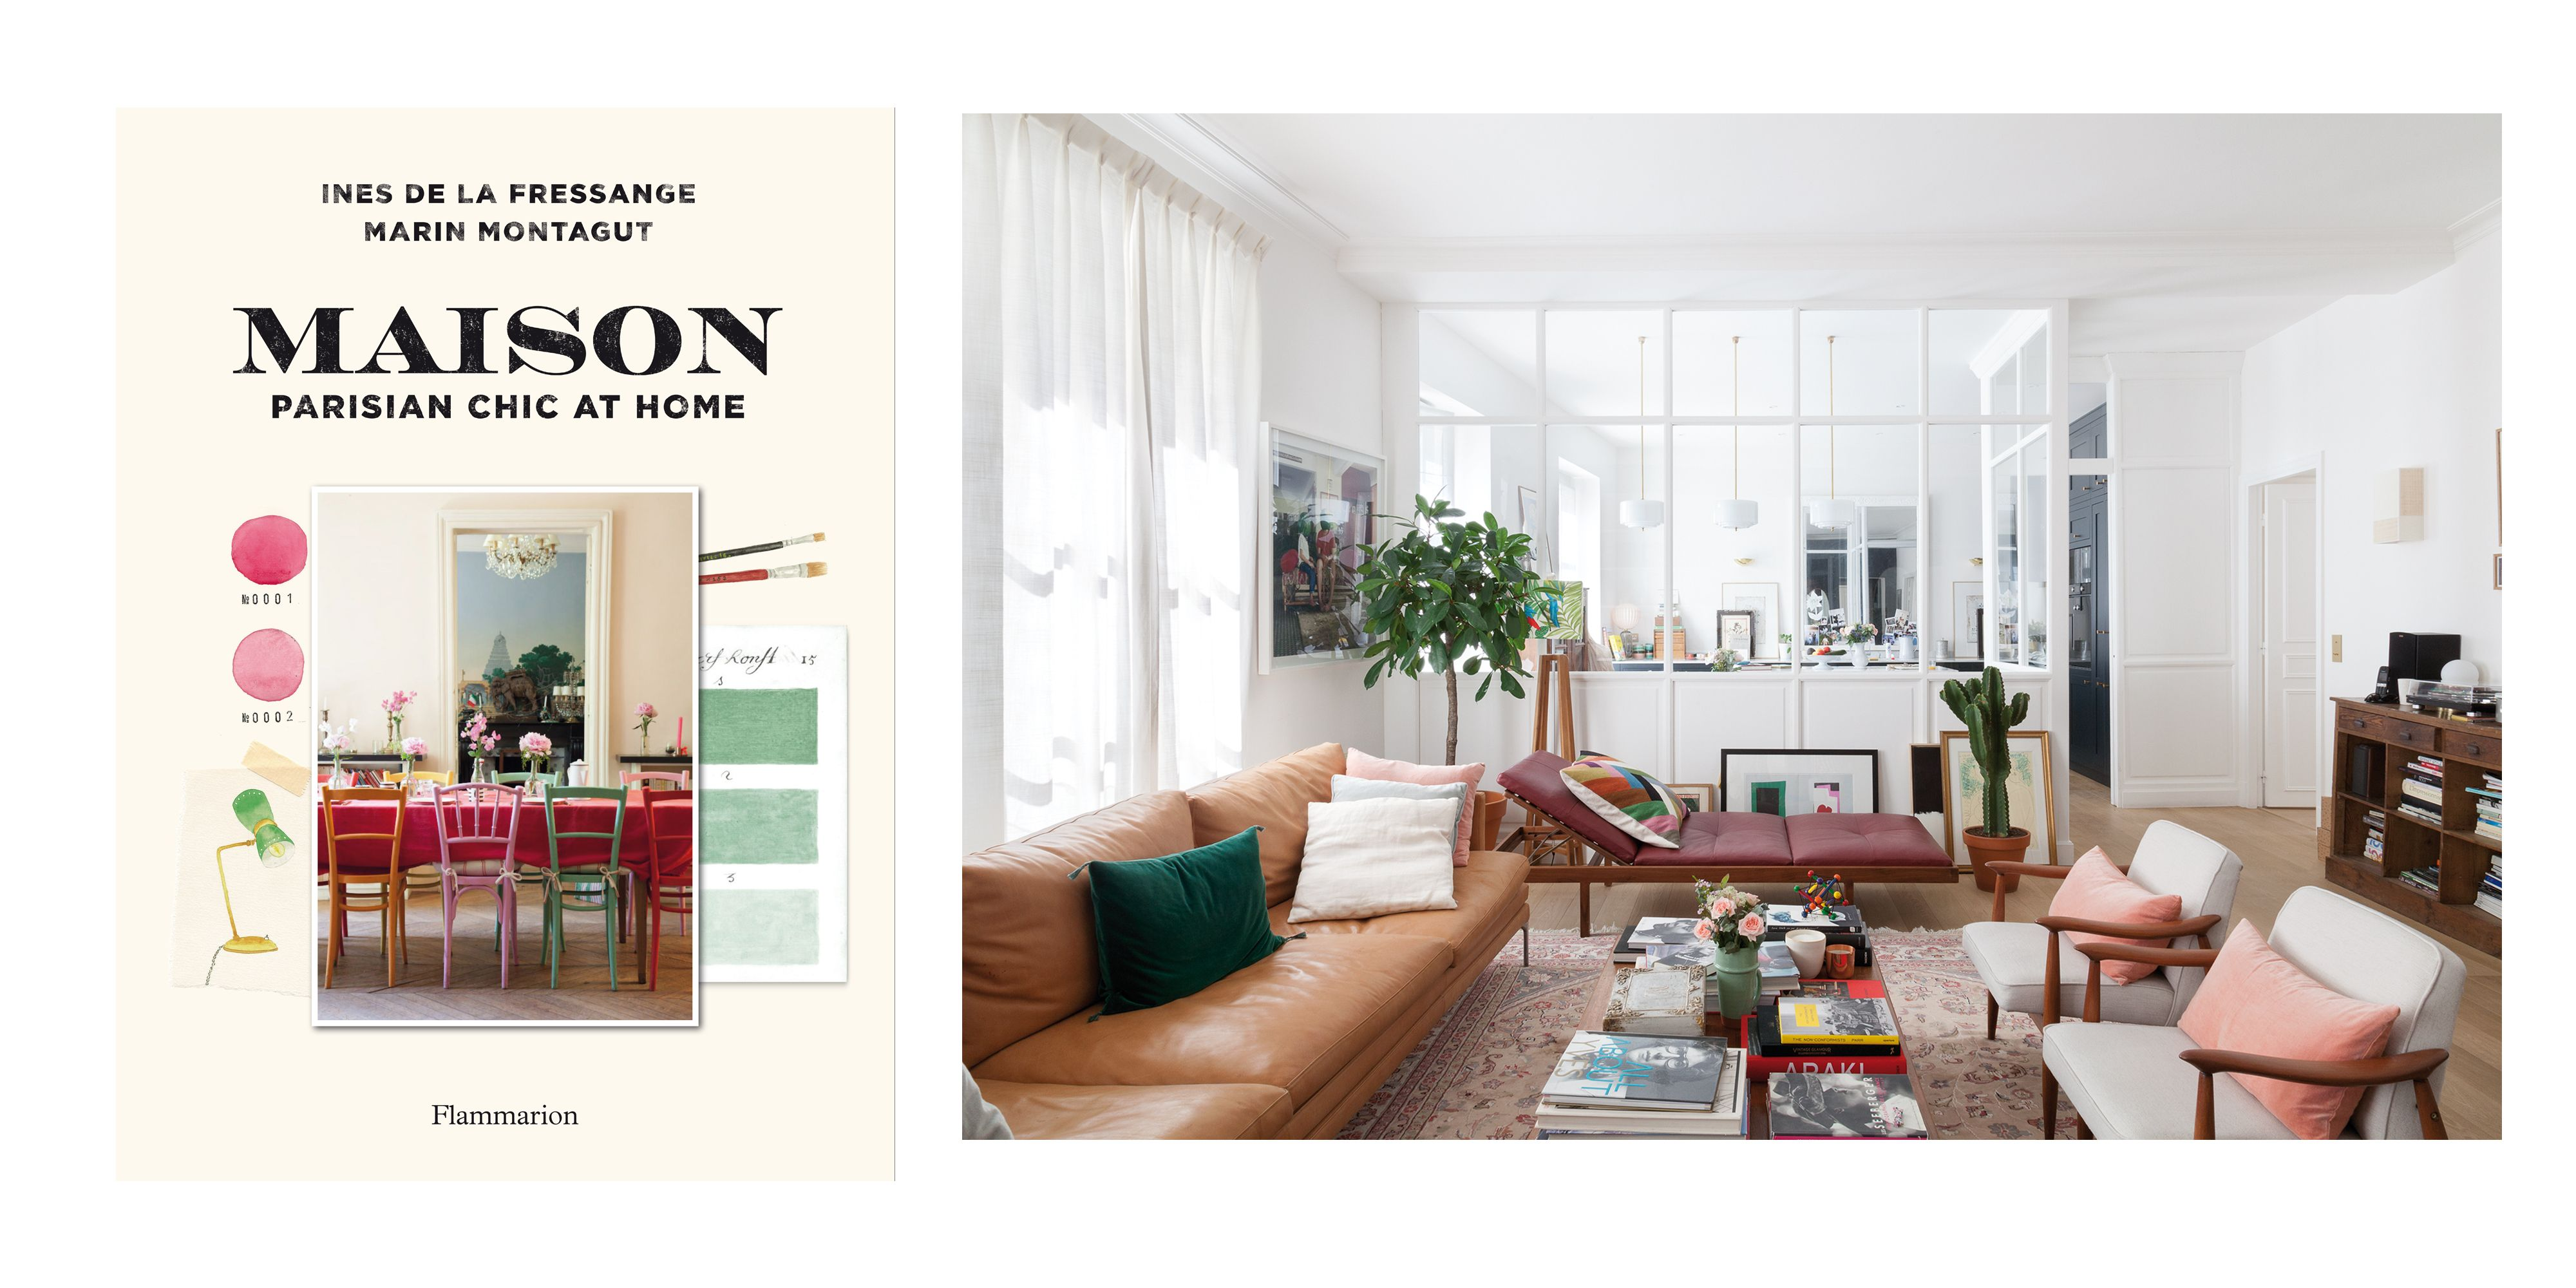 Ines de la Fressange's Parisian Chic at Home Book - Tour the Home ...